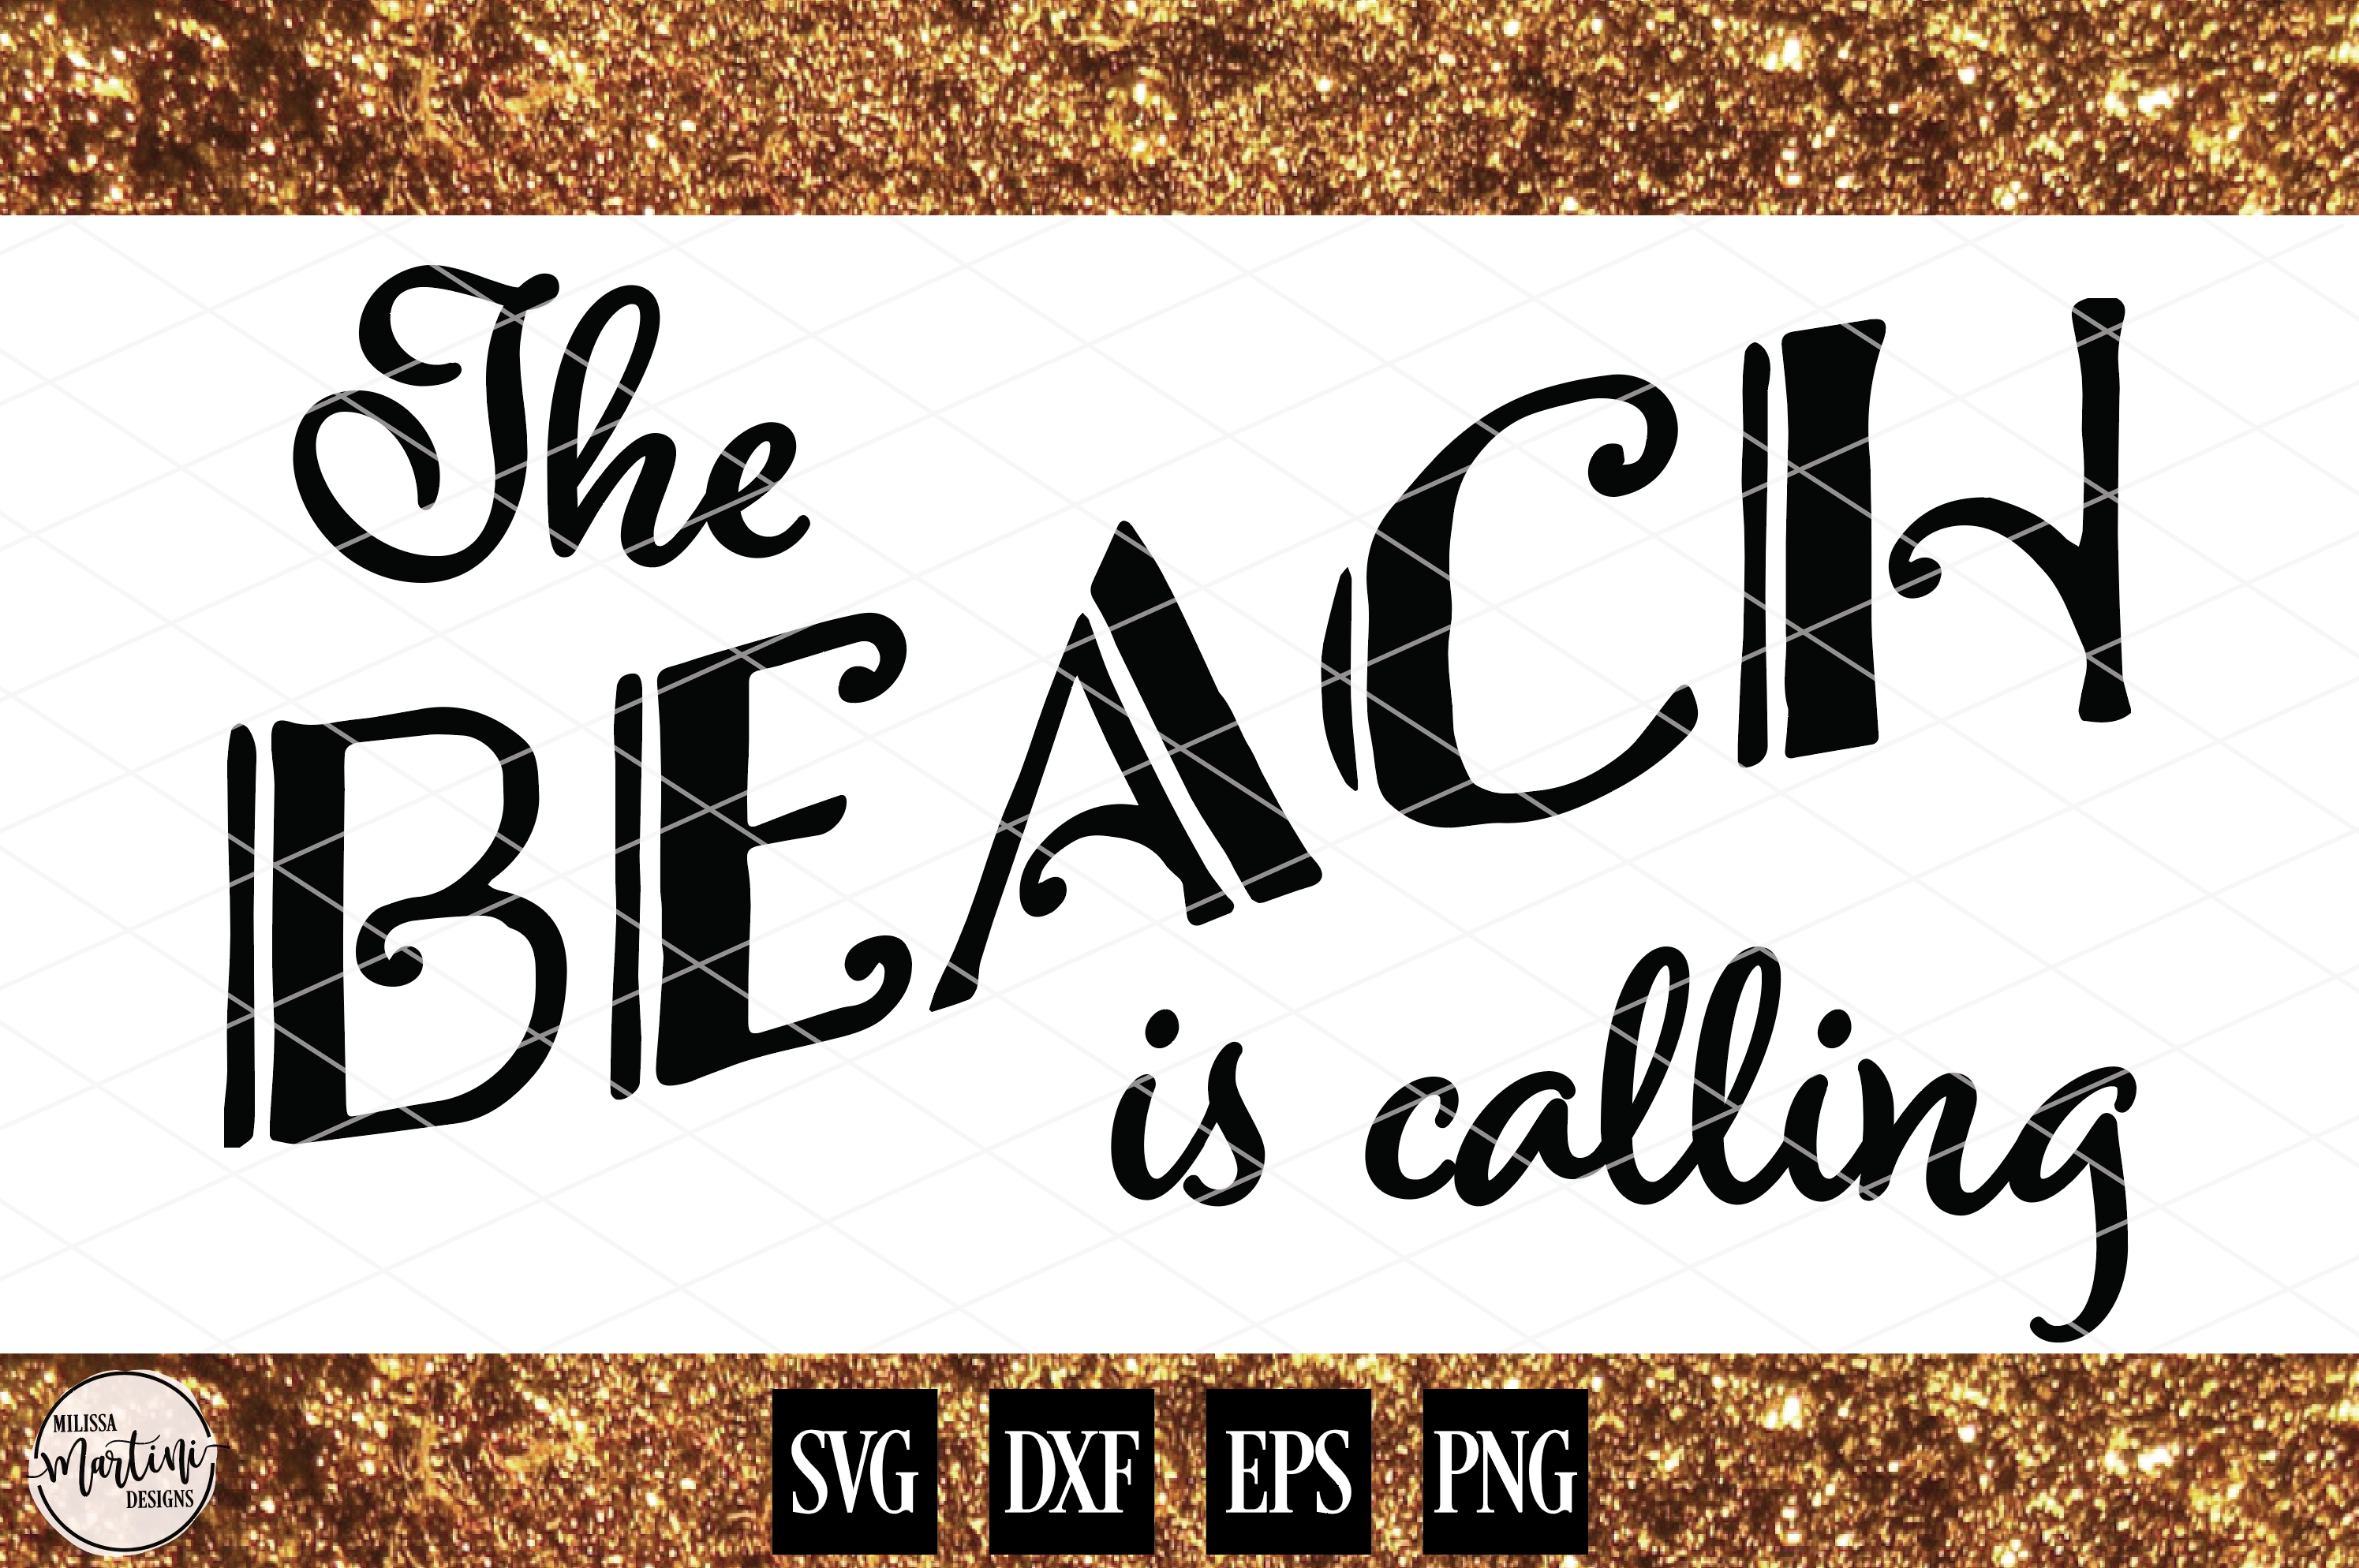 The Beach is Calling example image 1